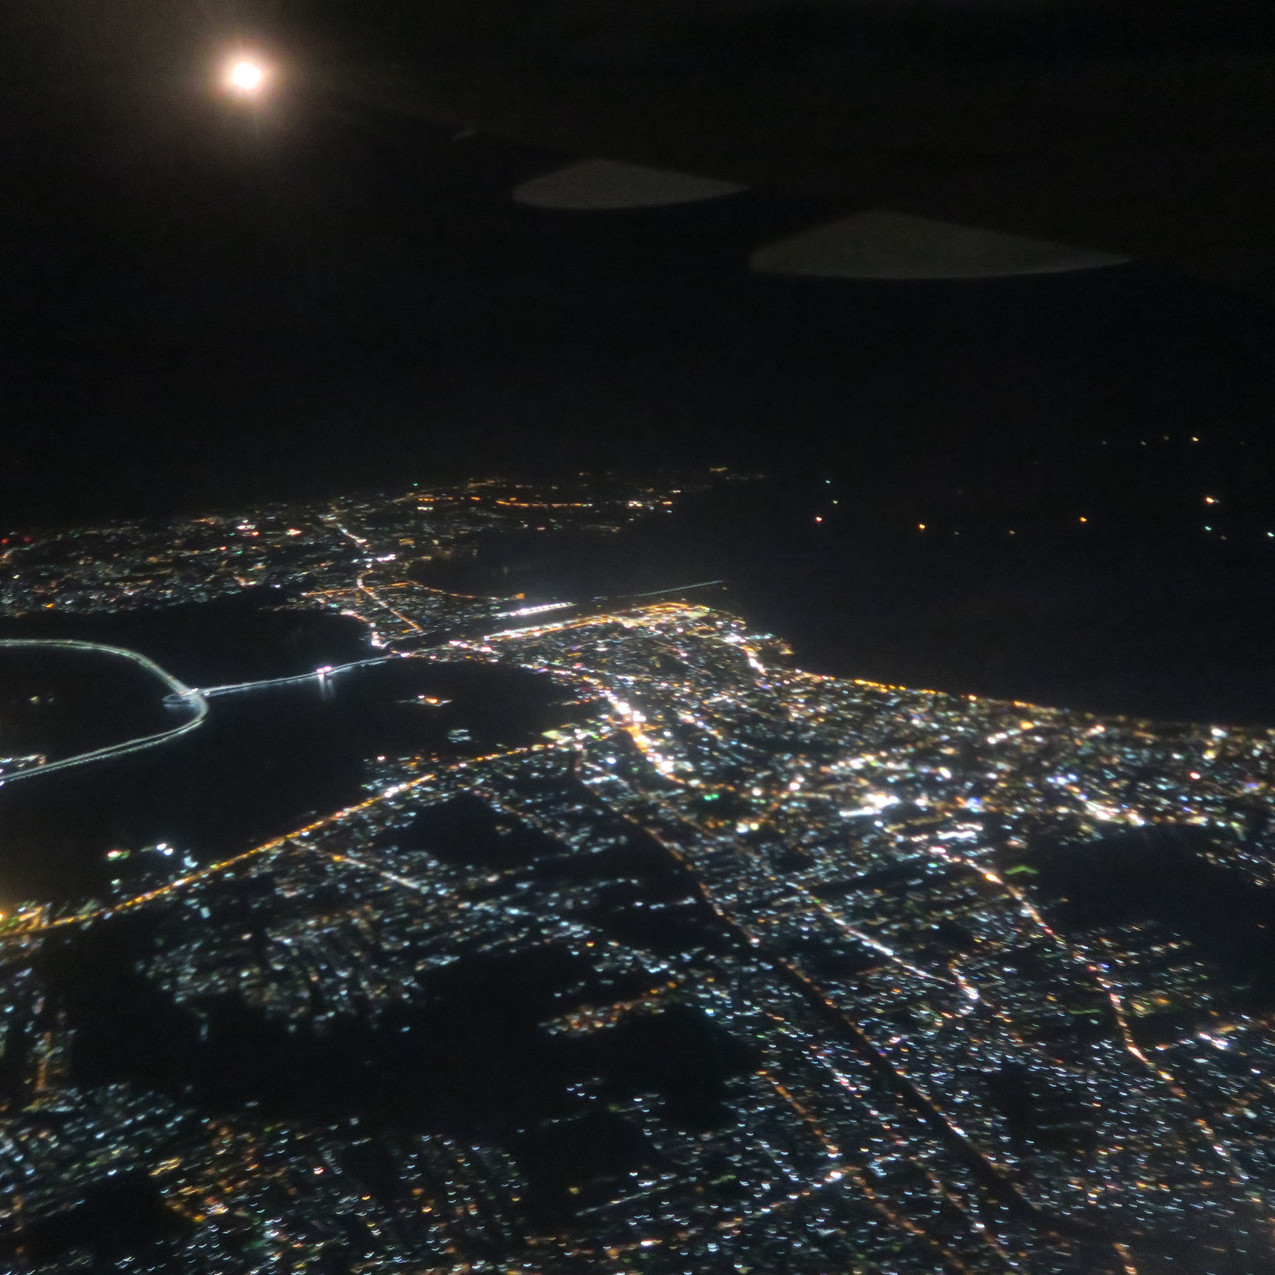 Bali at night from above